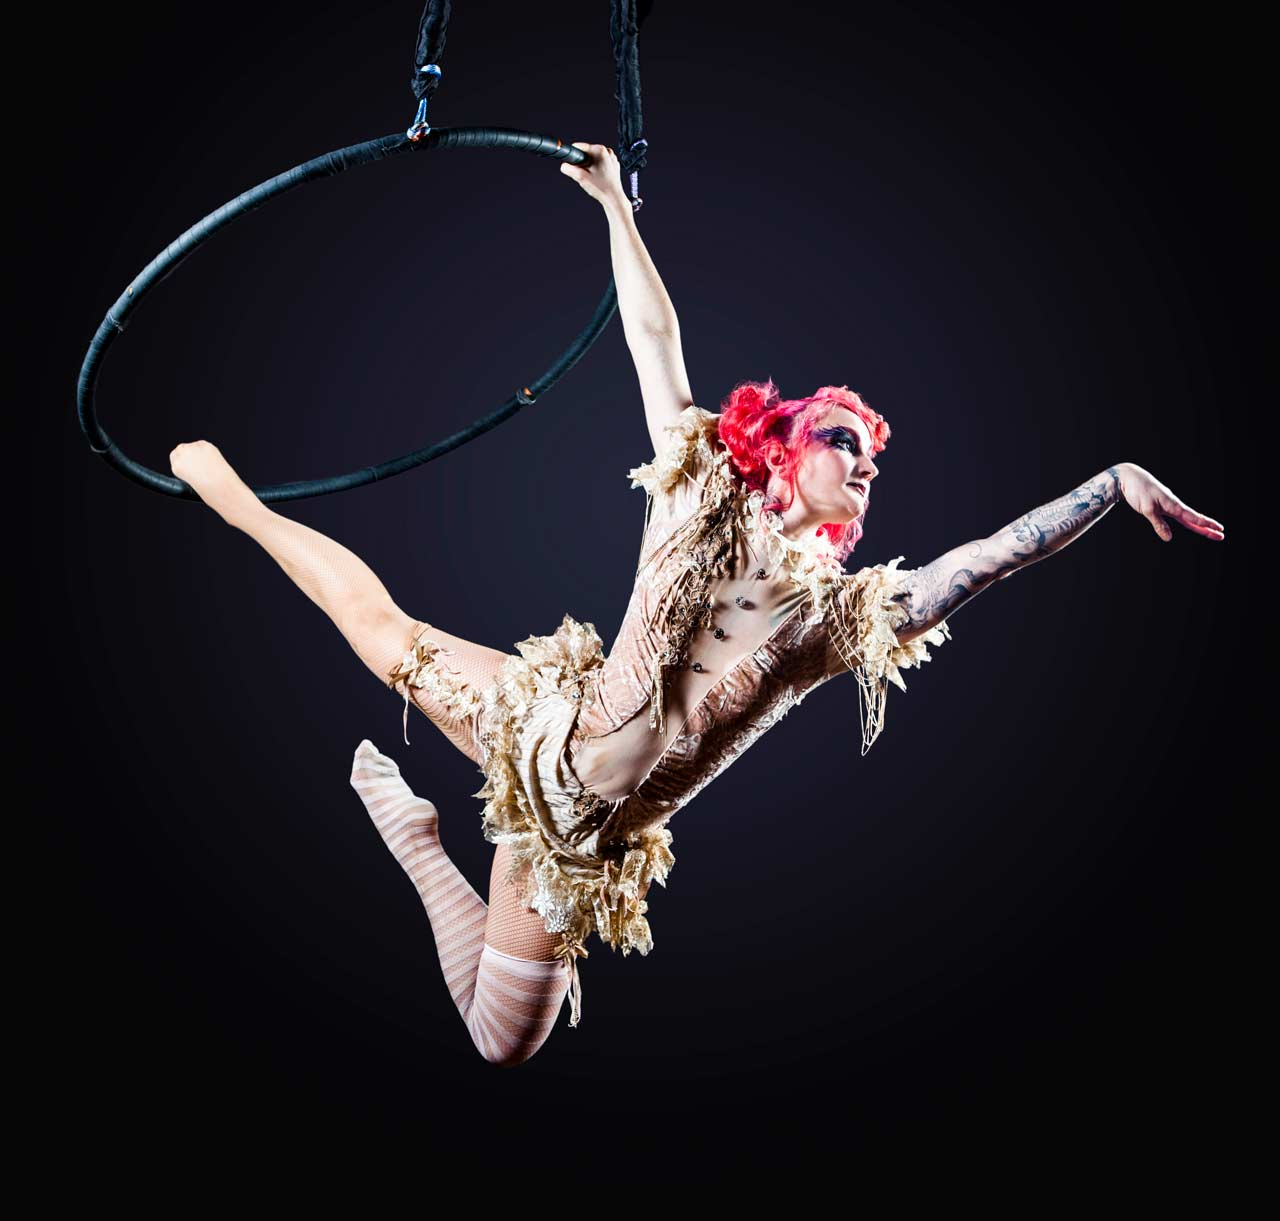 Photo of a solo aerialist using a trapeze.